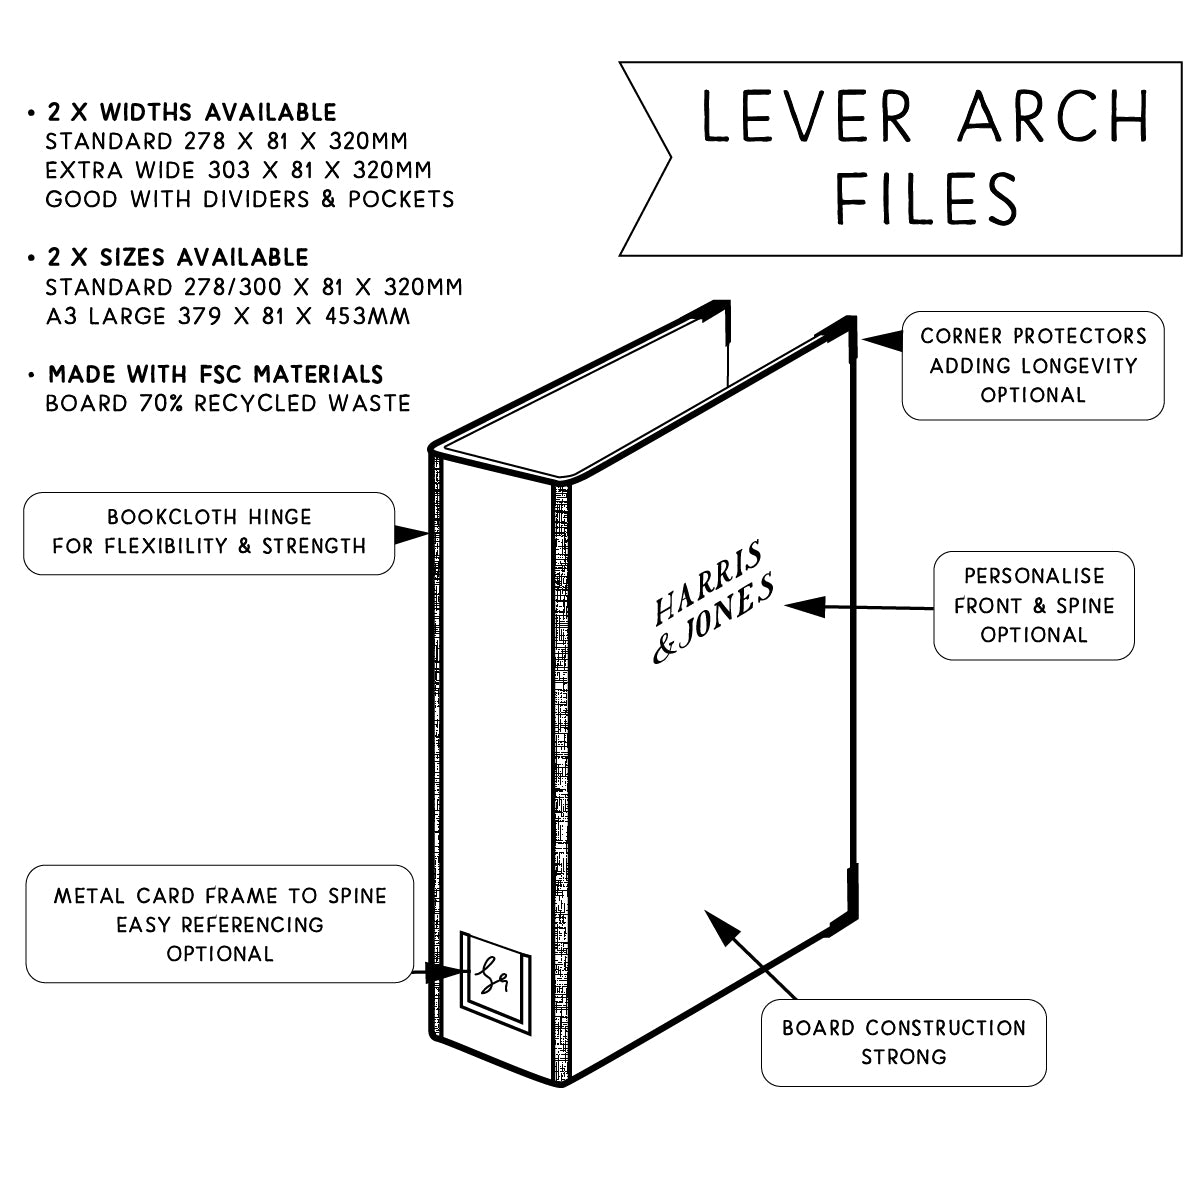 Patterned Lever Arch Files